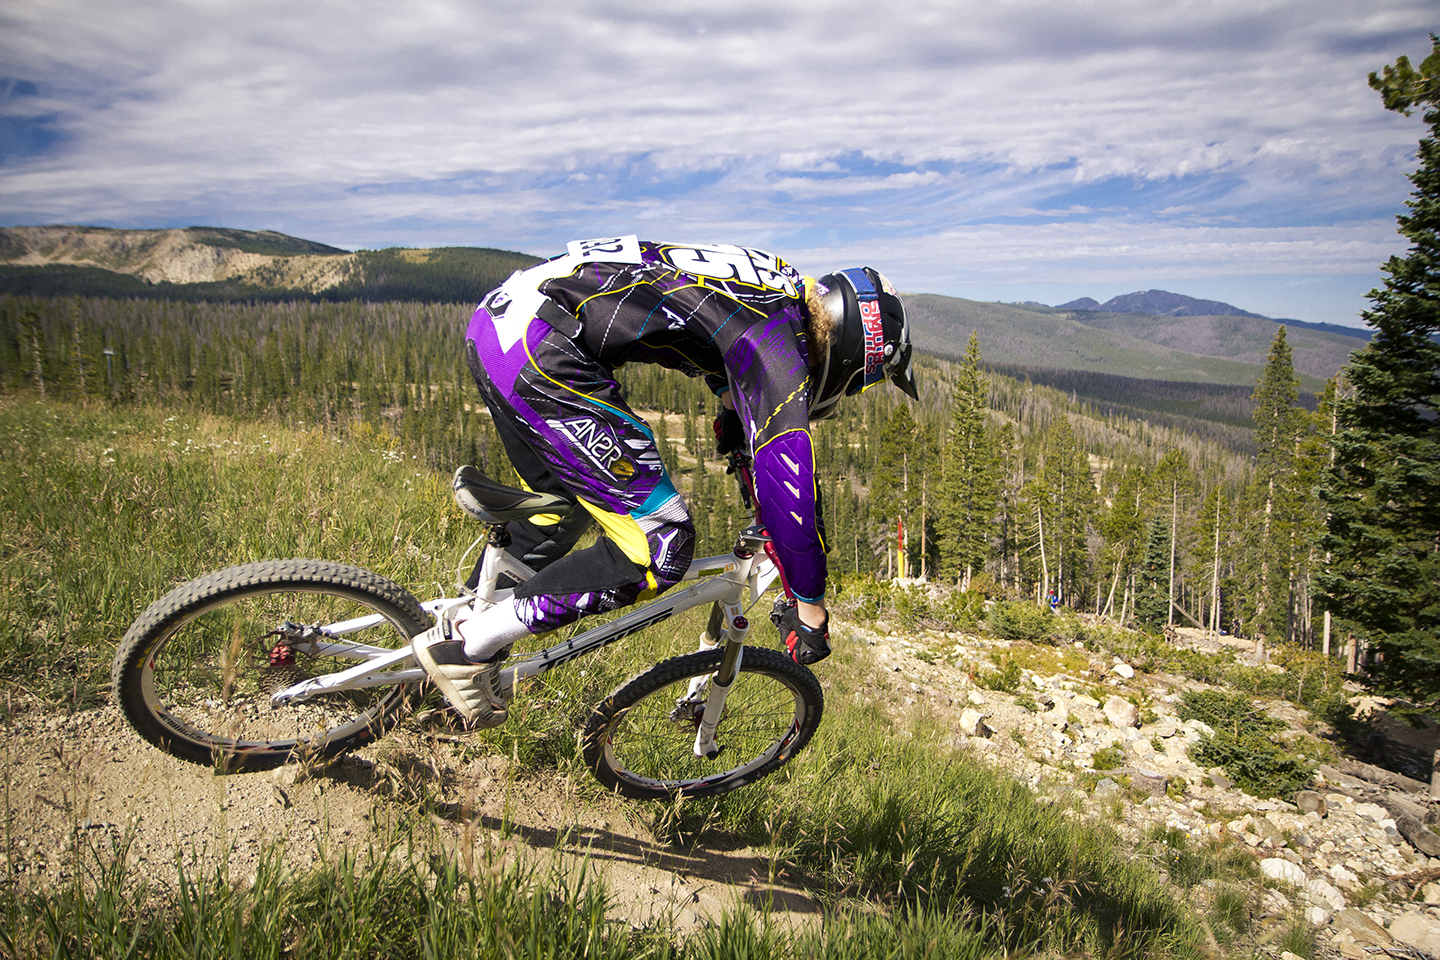 World-Series-Enduro-Bike-Race-at-Colorado-Freeride-Festival